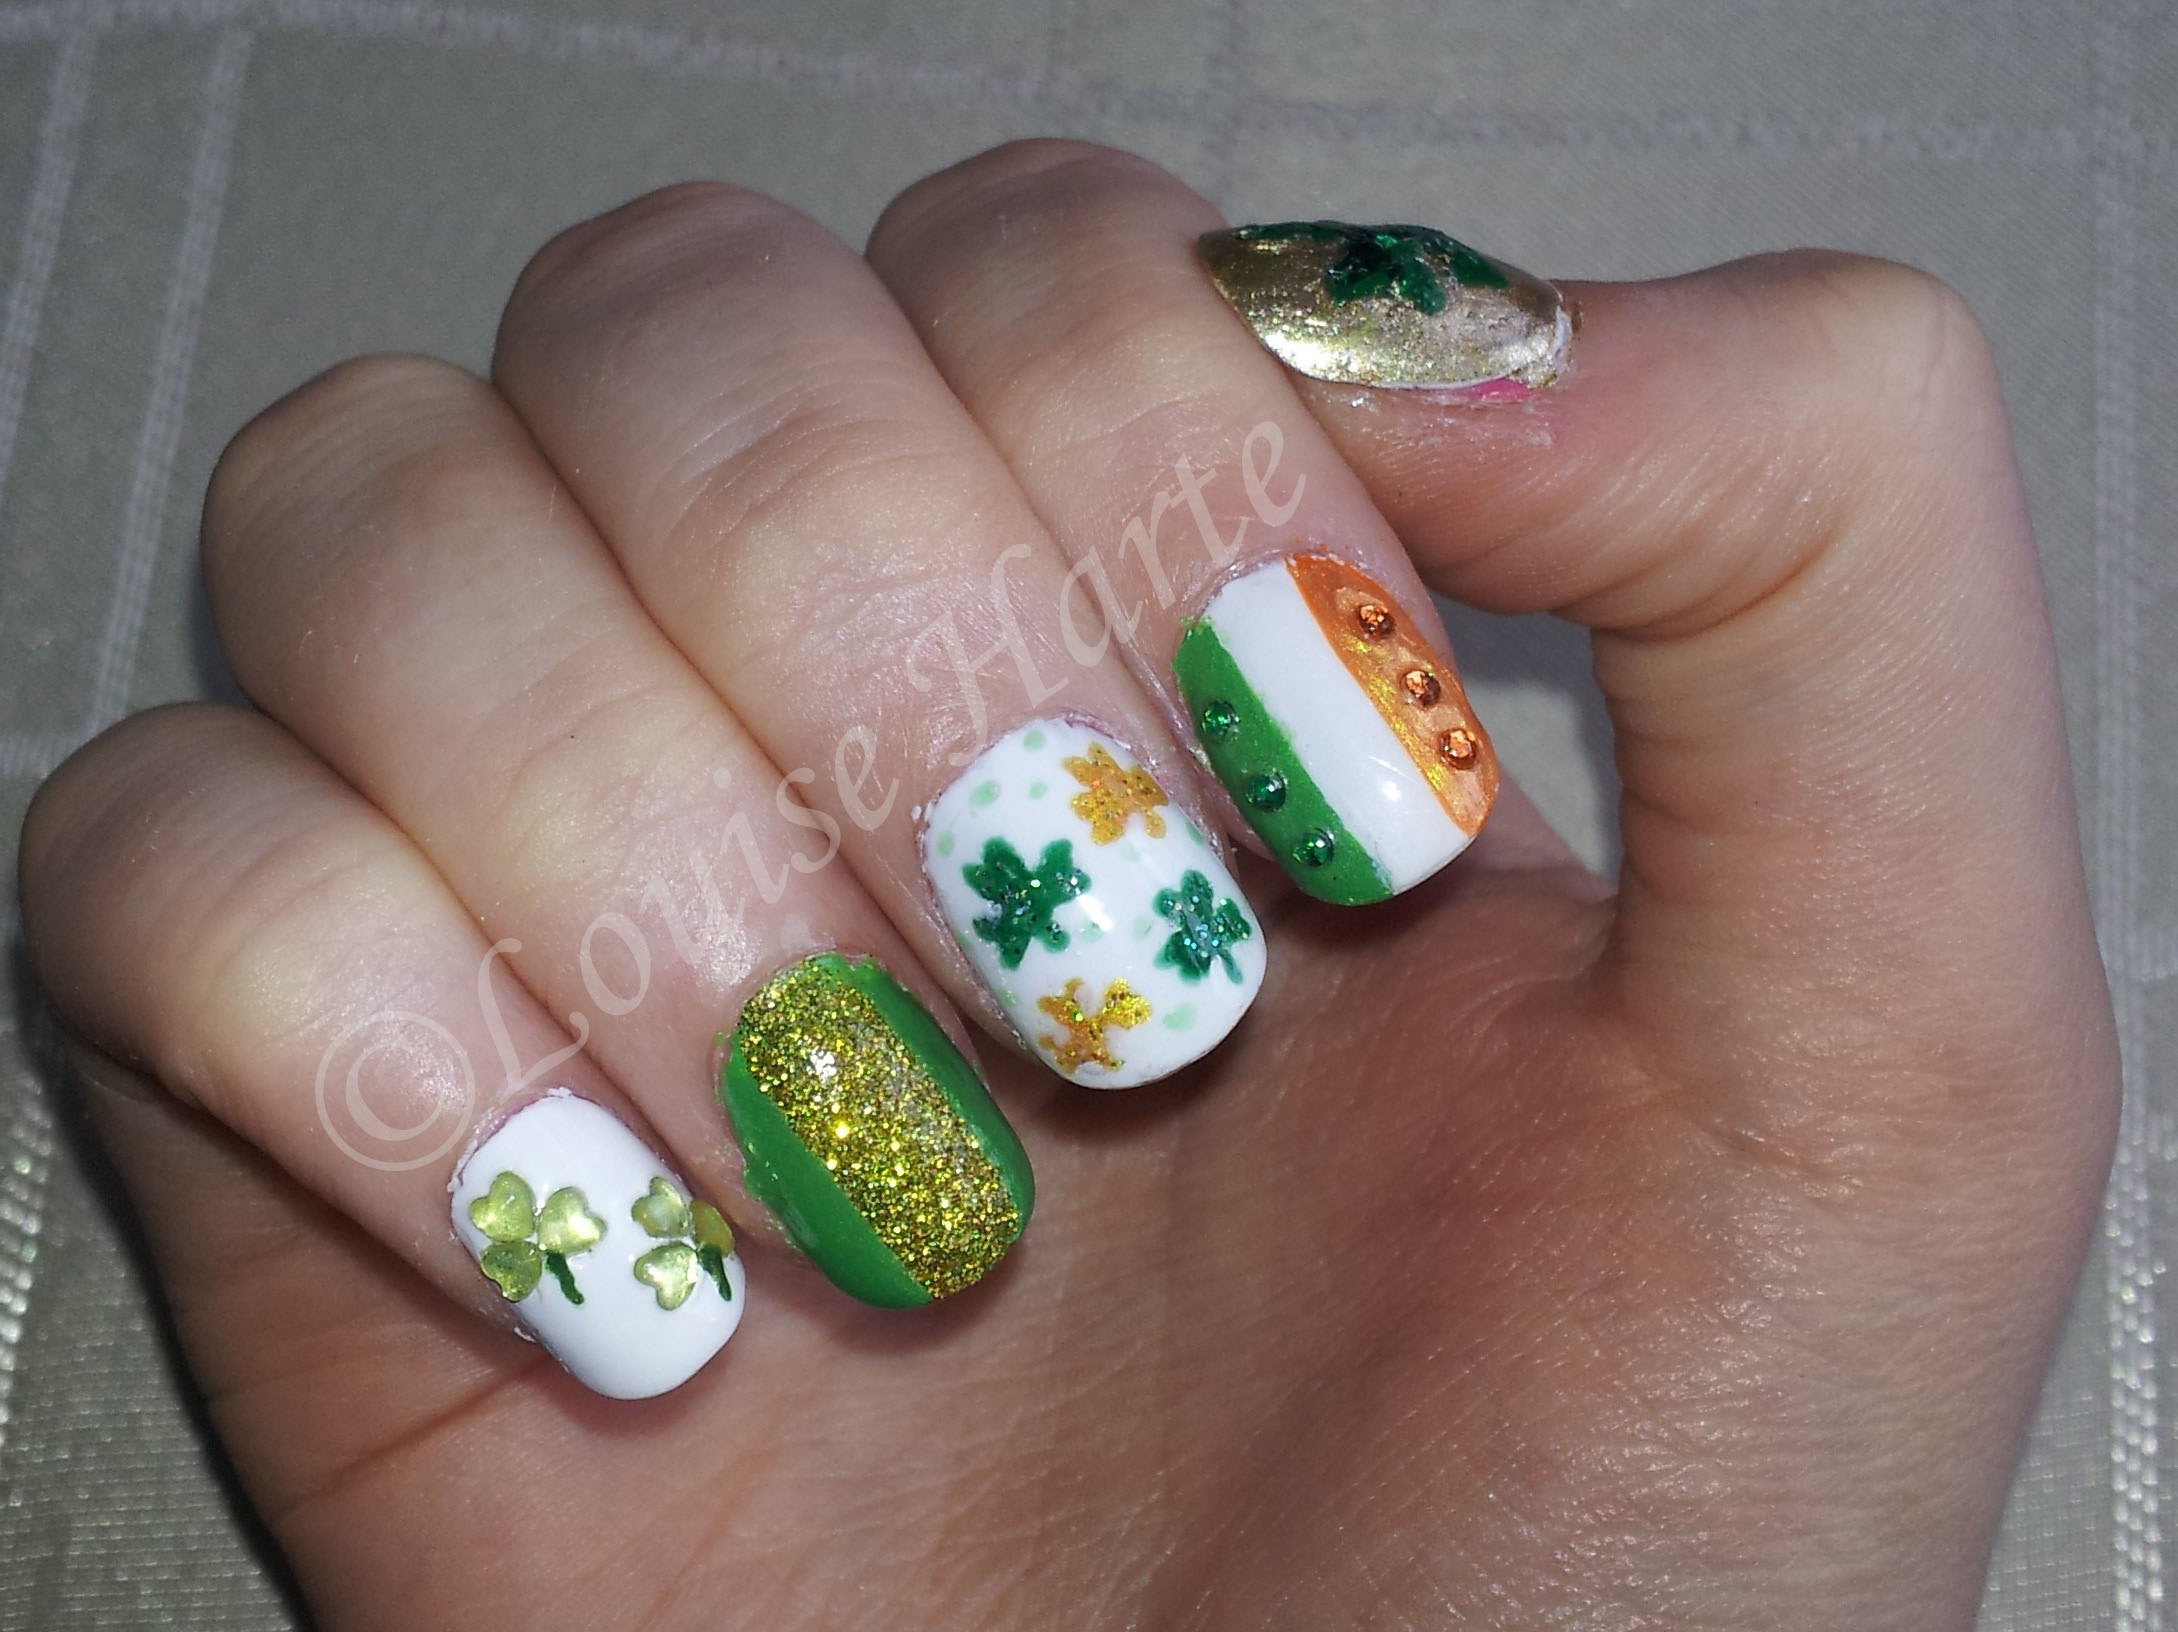 Paddy39;s Day Nails  Nails, Nail Art Photo 34180456  Fanpop